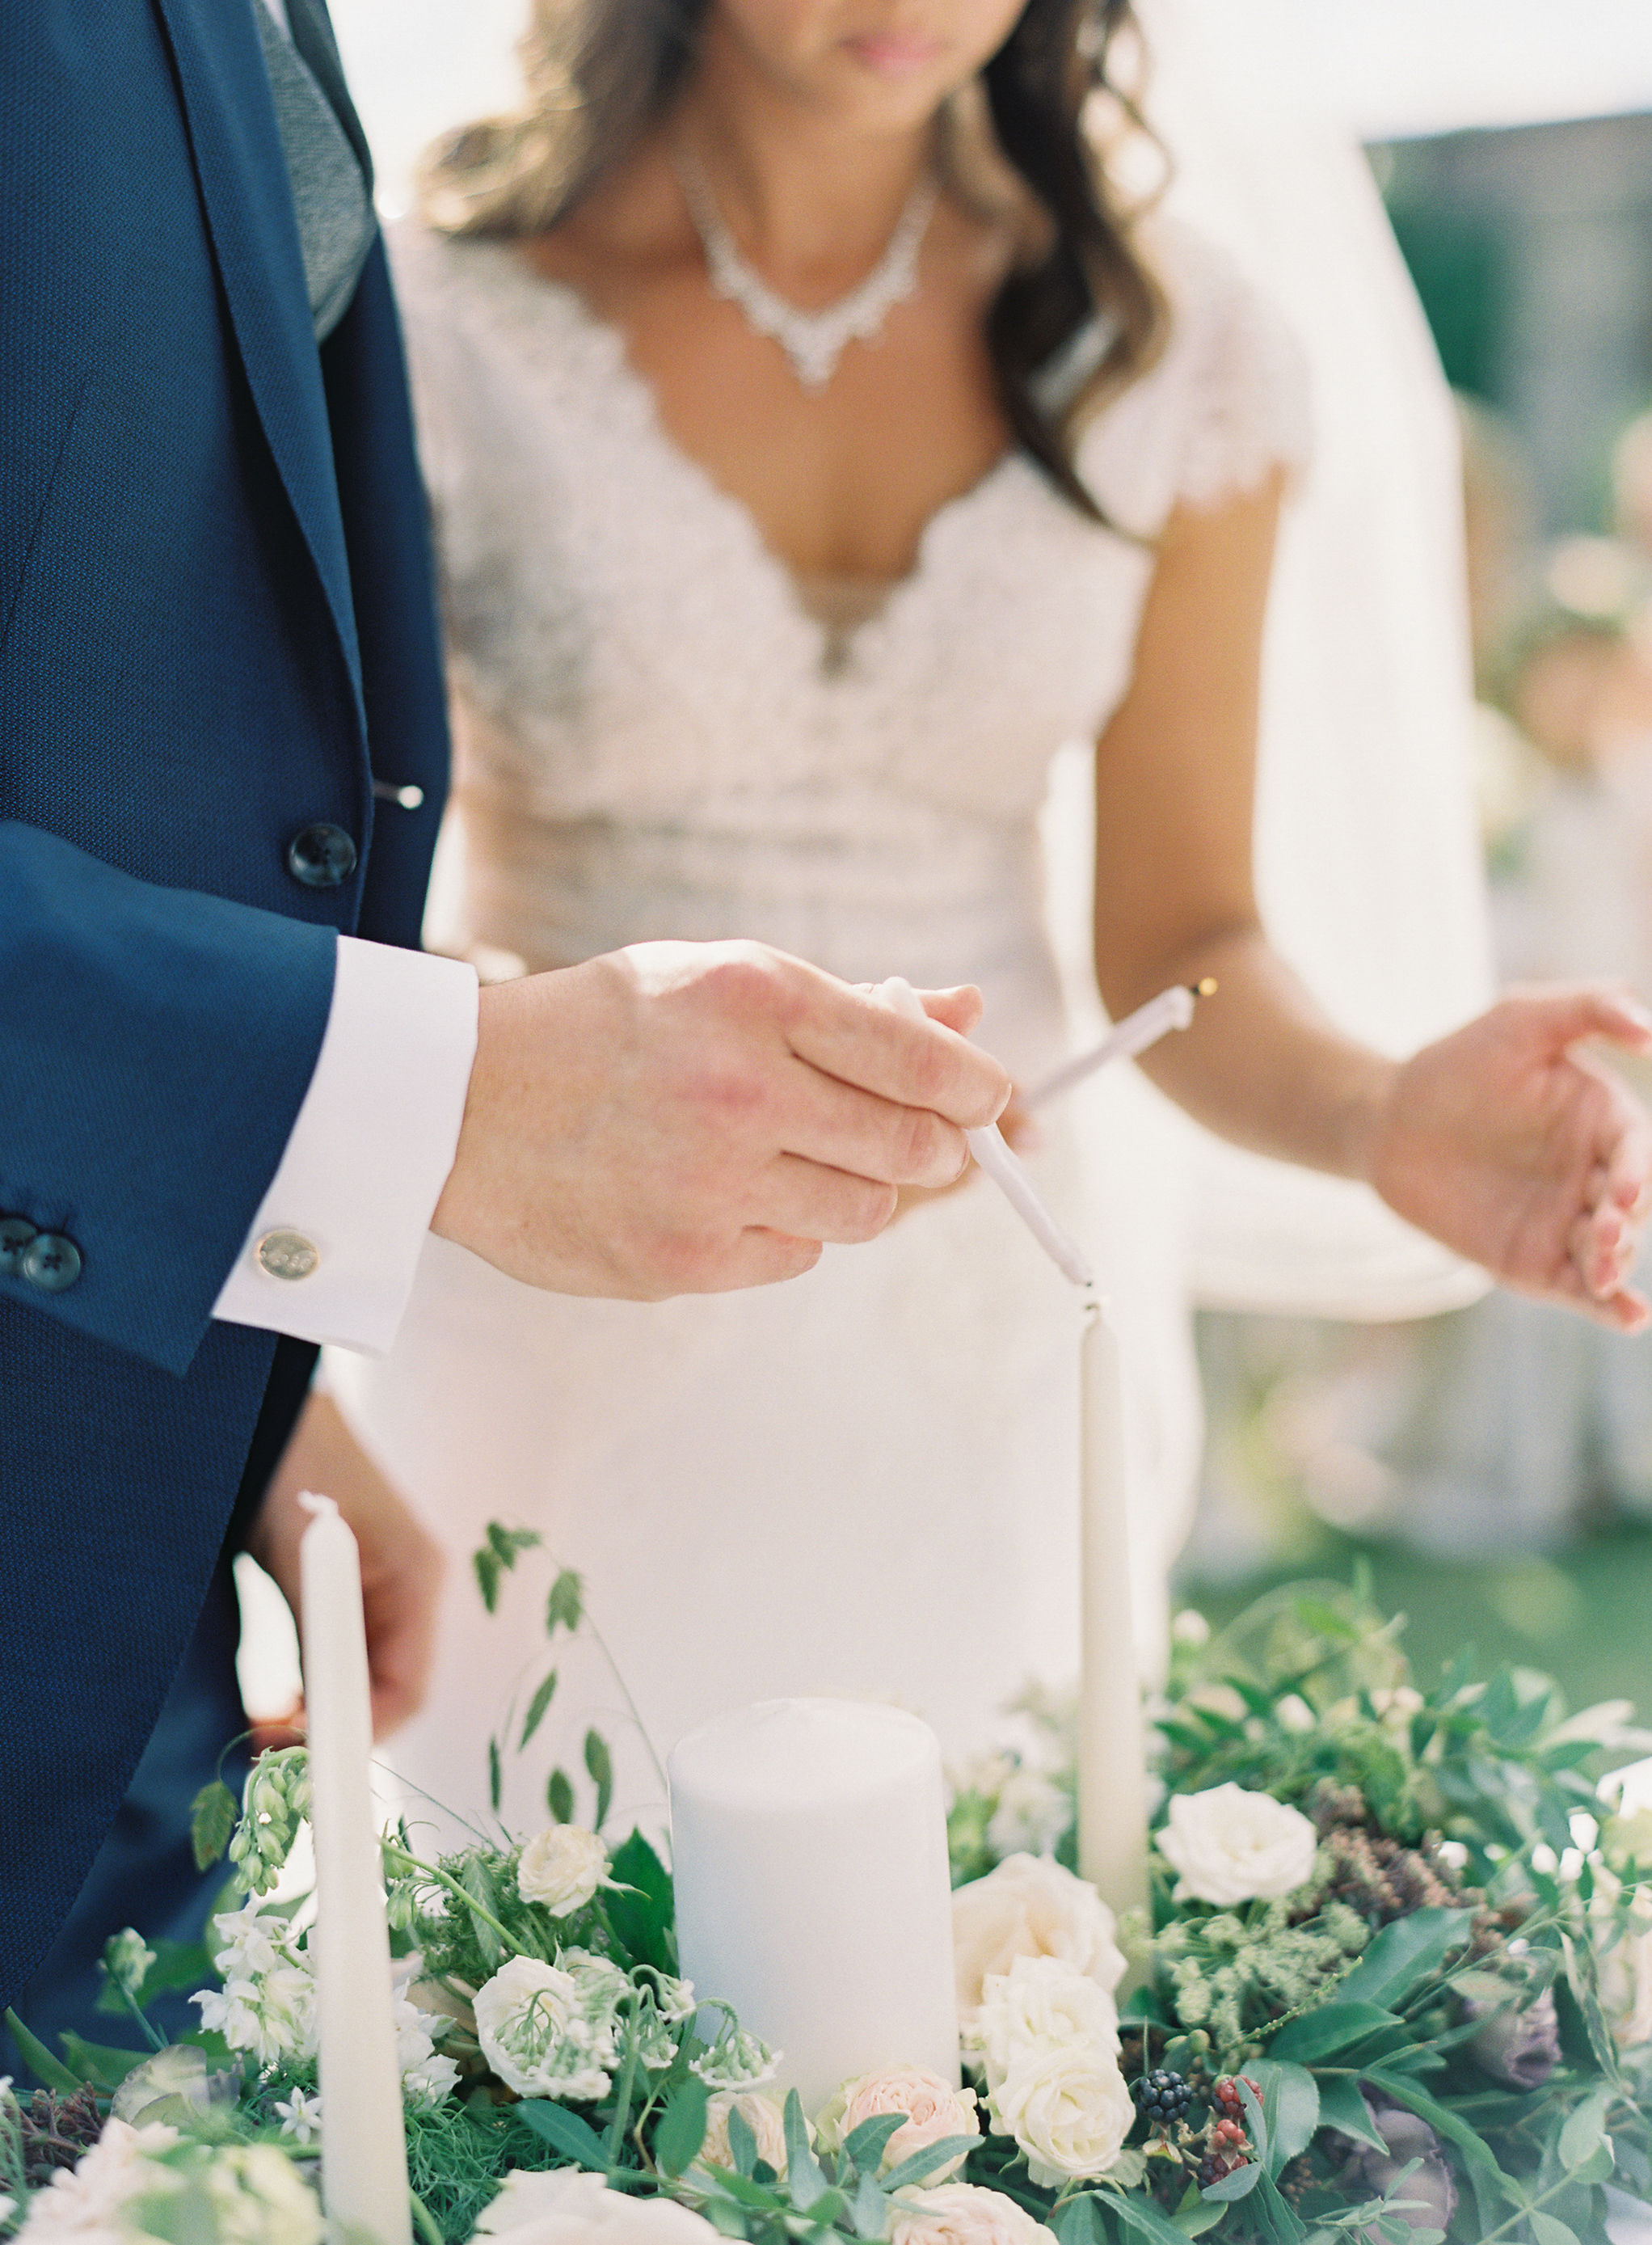 bride and groom lighting unity candle